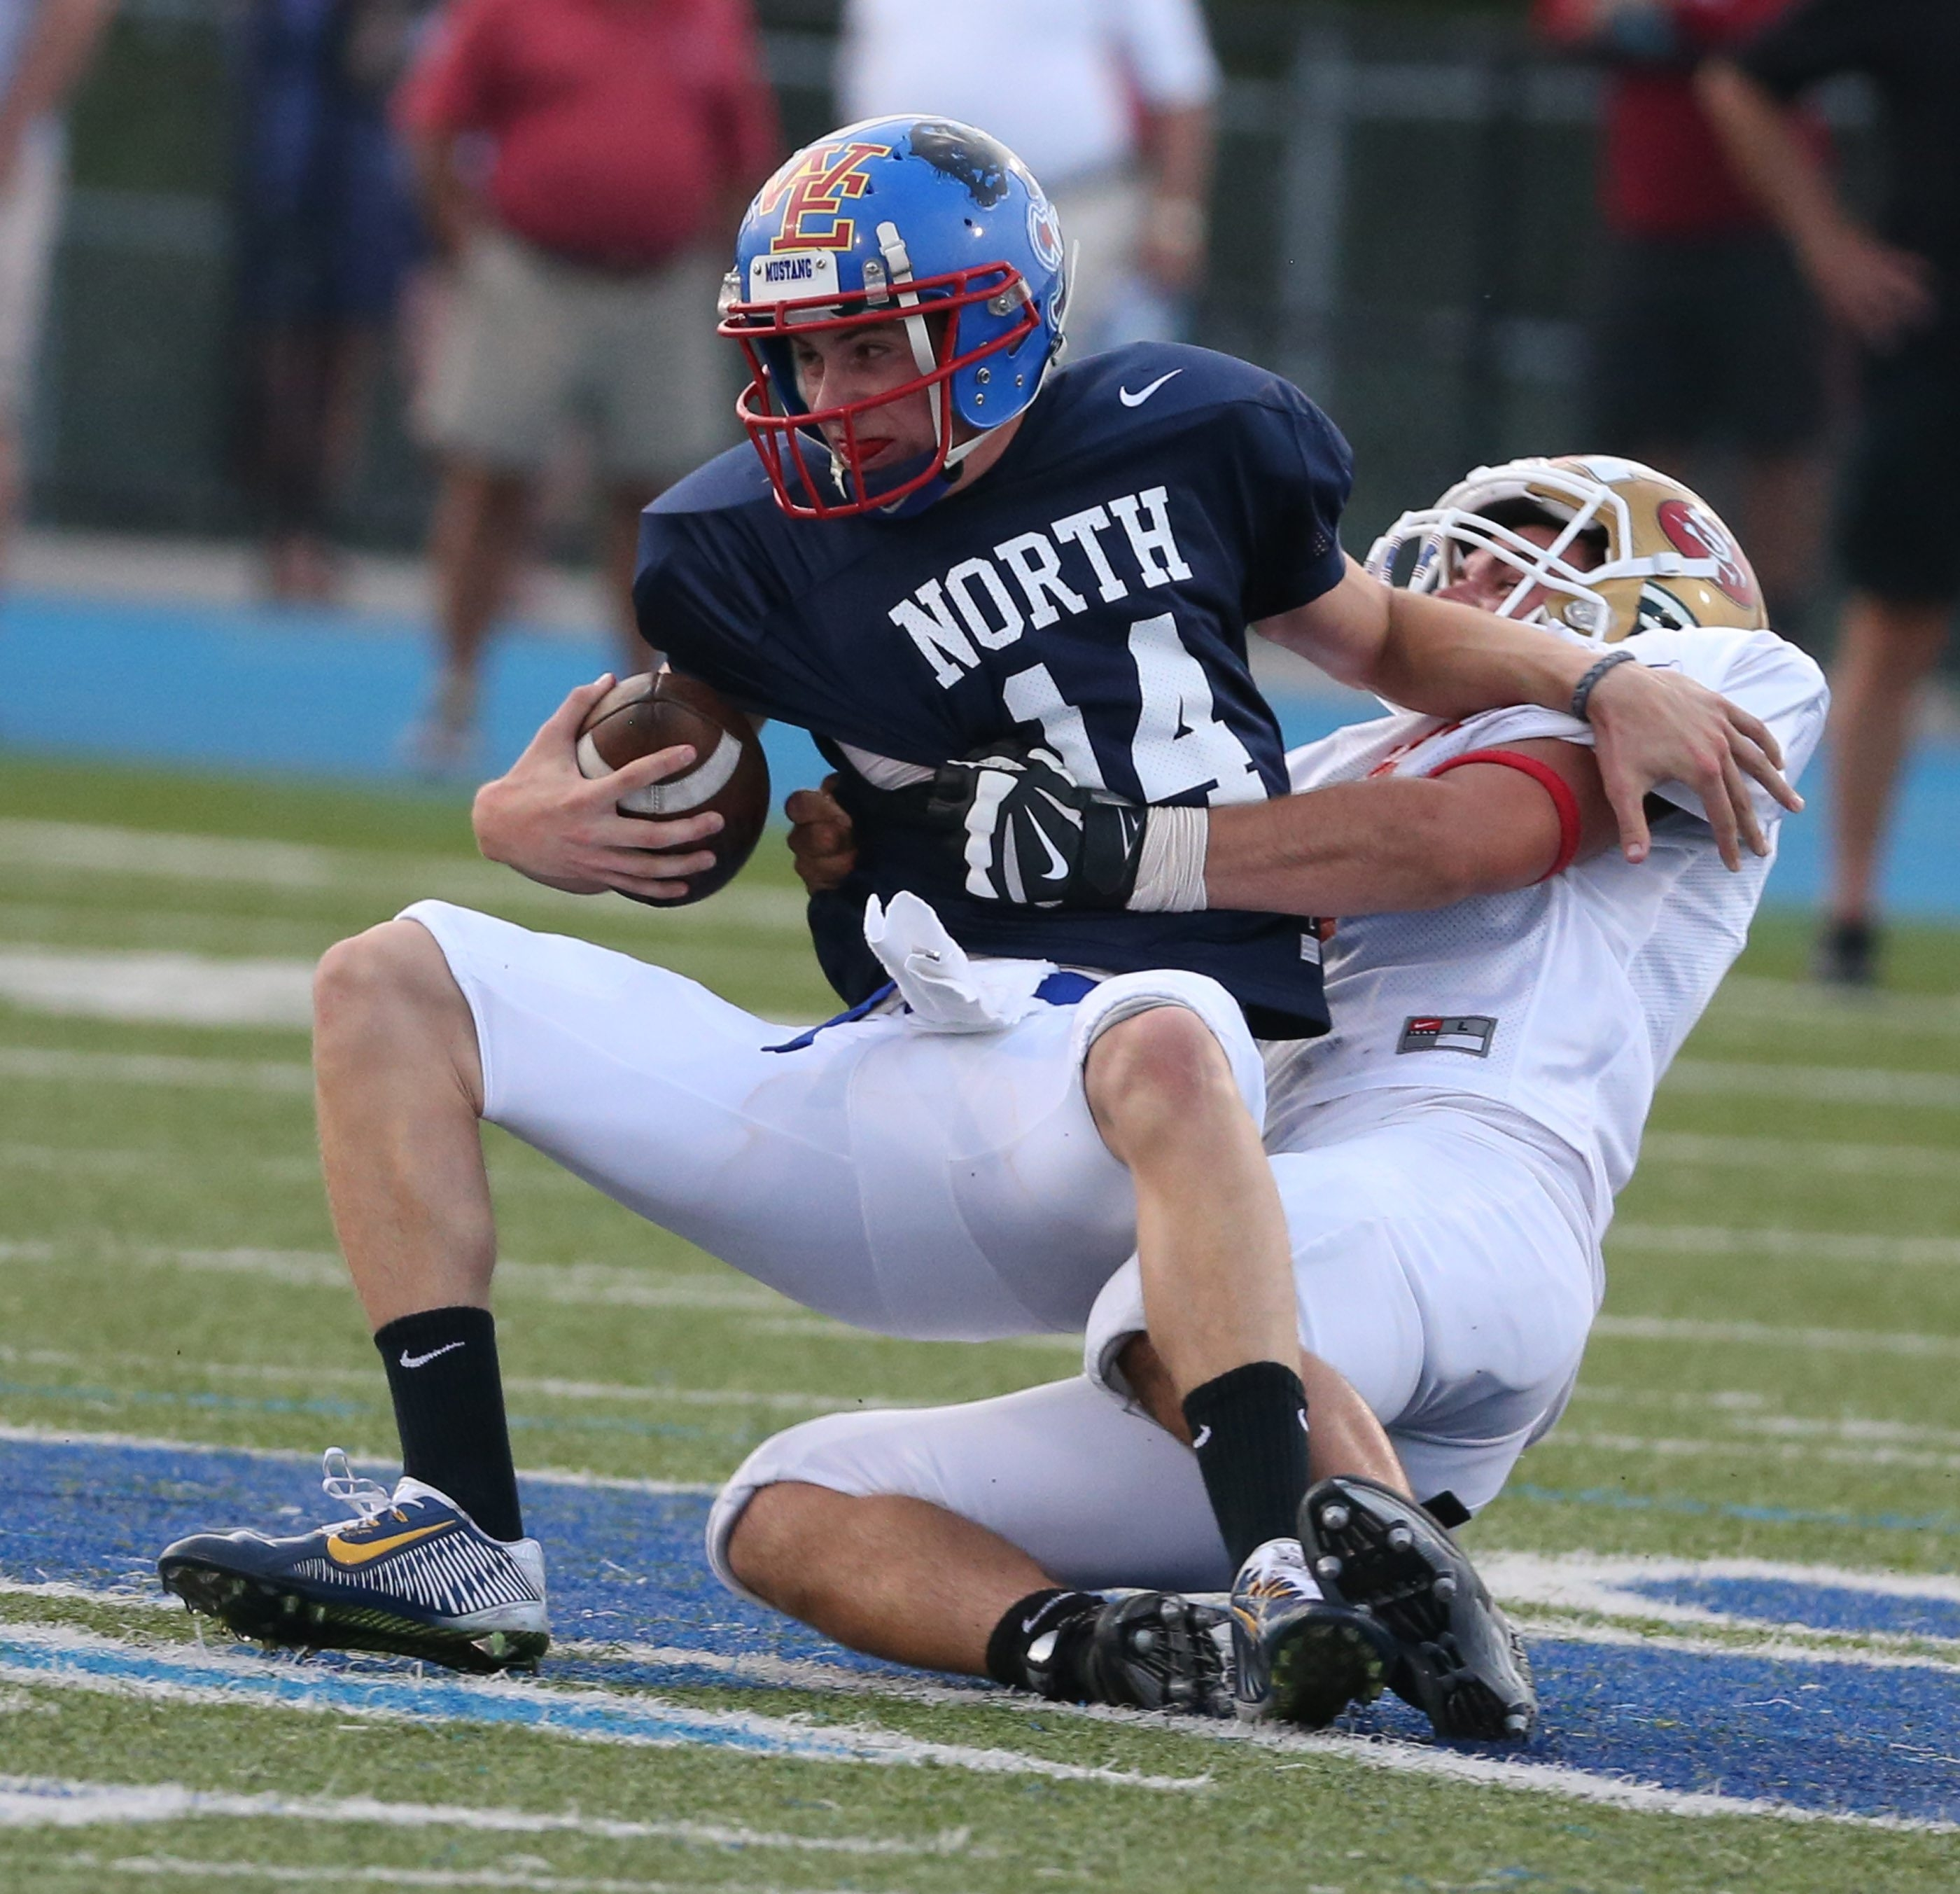 Brien Pacholec of the South sacks North's Jason Hellwig in Wednesday night's Kensington Lions All-Star game.